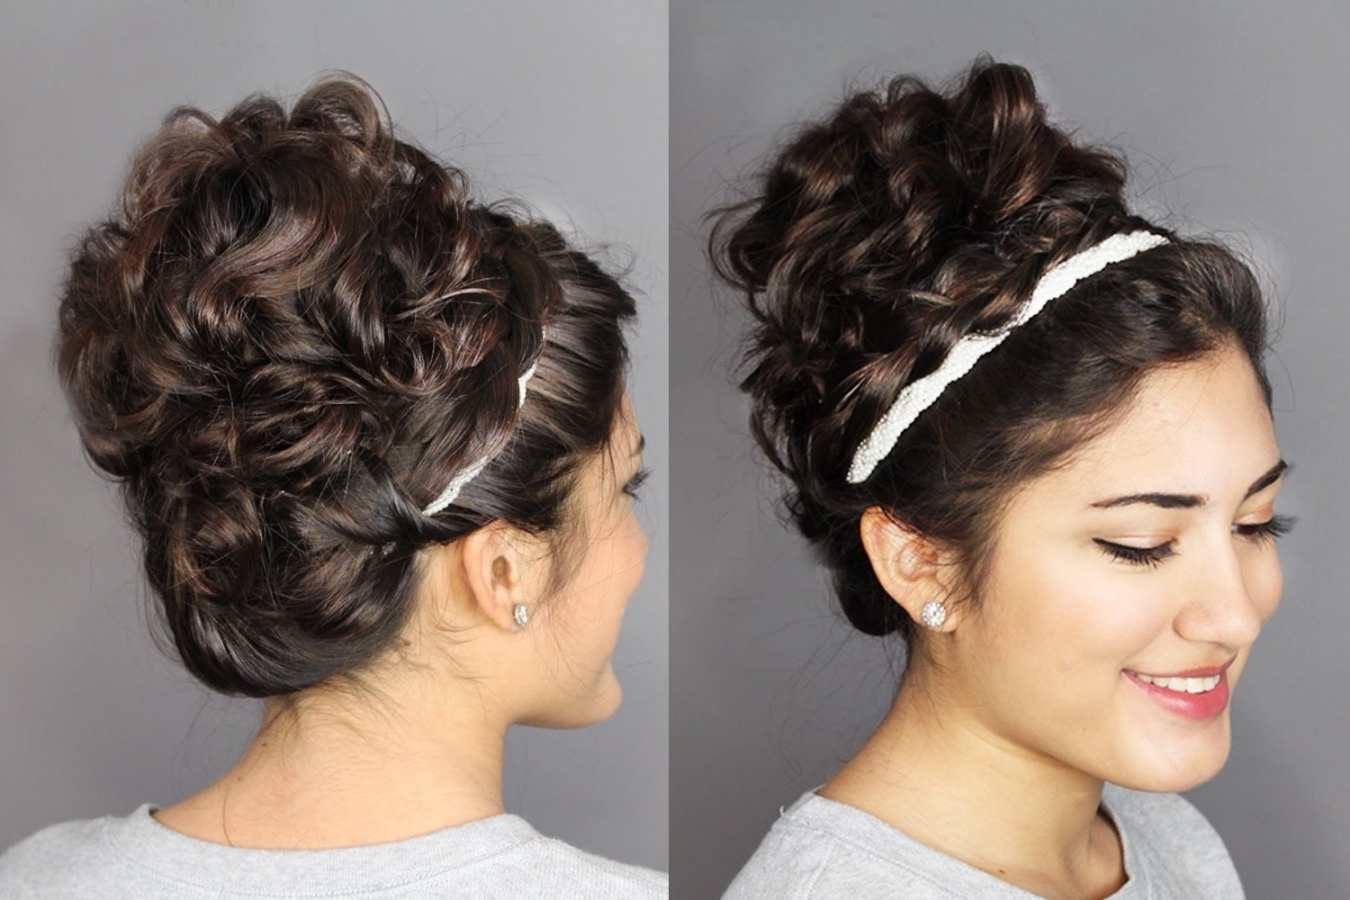 Second Day Hair Holiday Updo: Braided Headband & Messy, Curly Bun Regarding Curly Bun Updo Hairstyles (View 13 of 15)